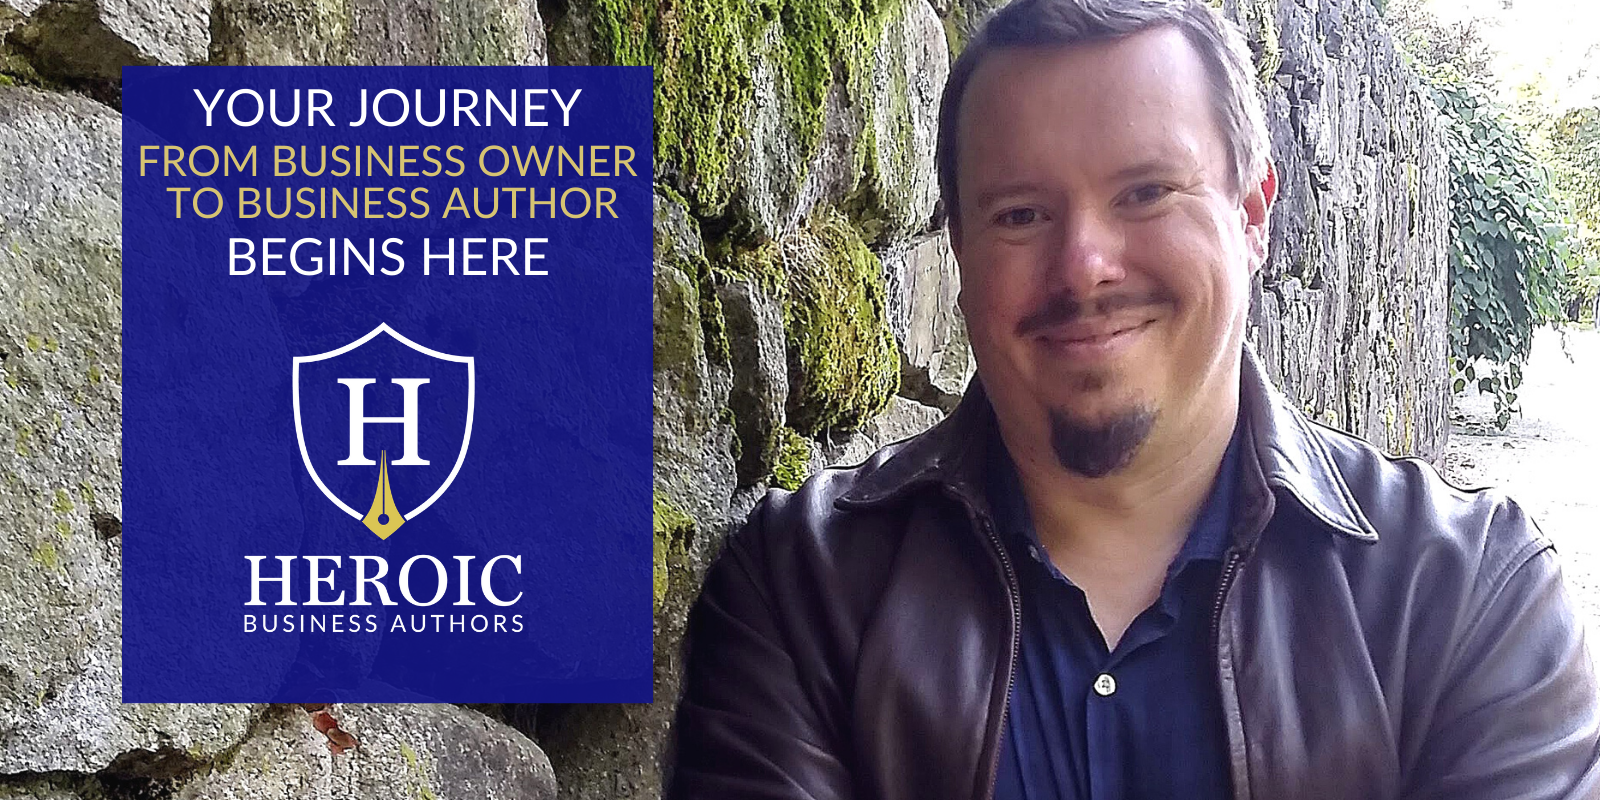 Heroic Business Authors - Your Journey from Business Owner to Business Author Begins Here